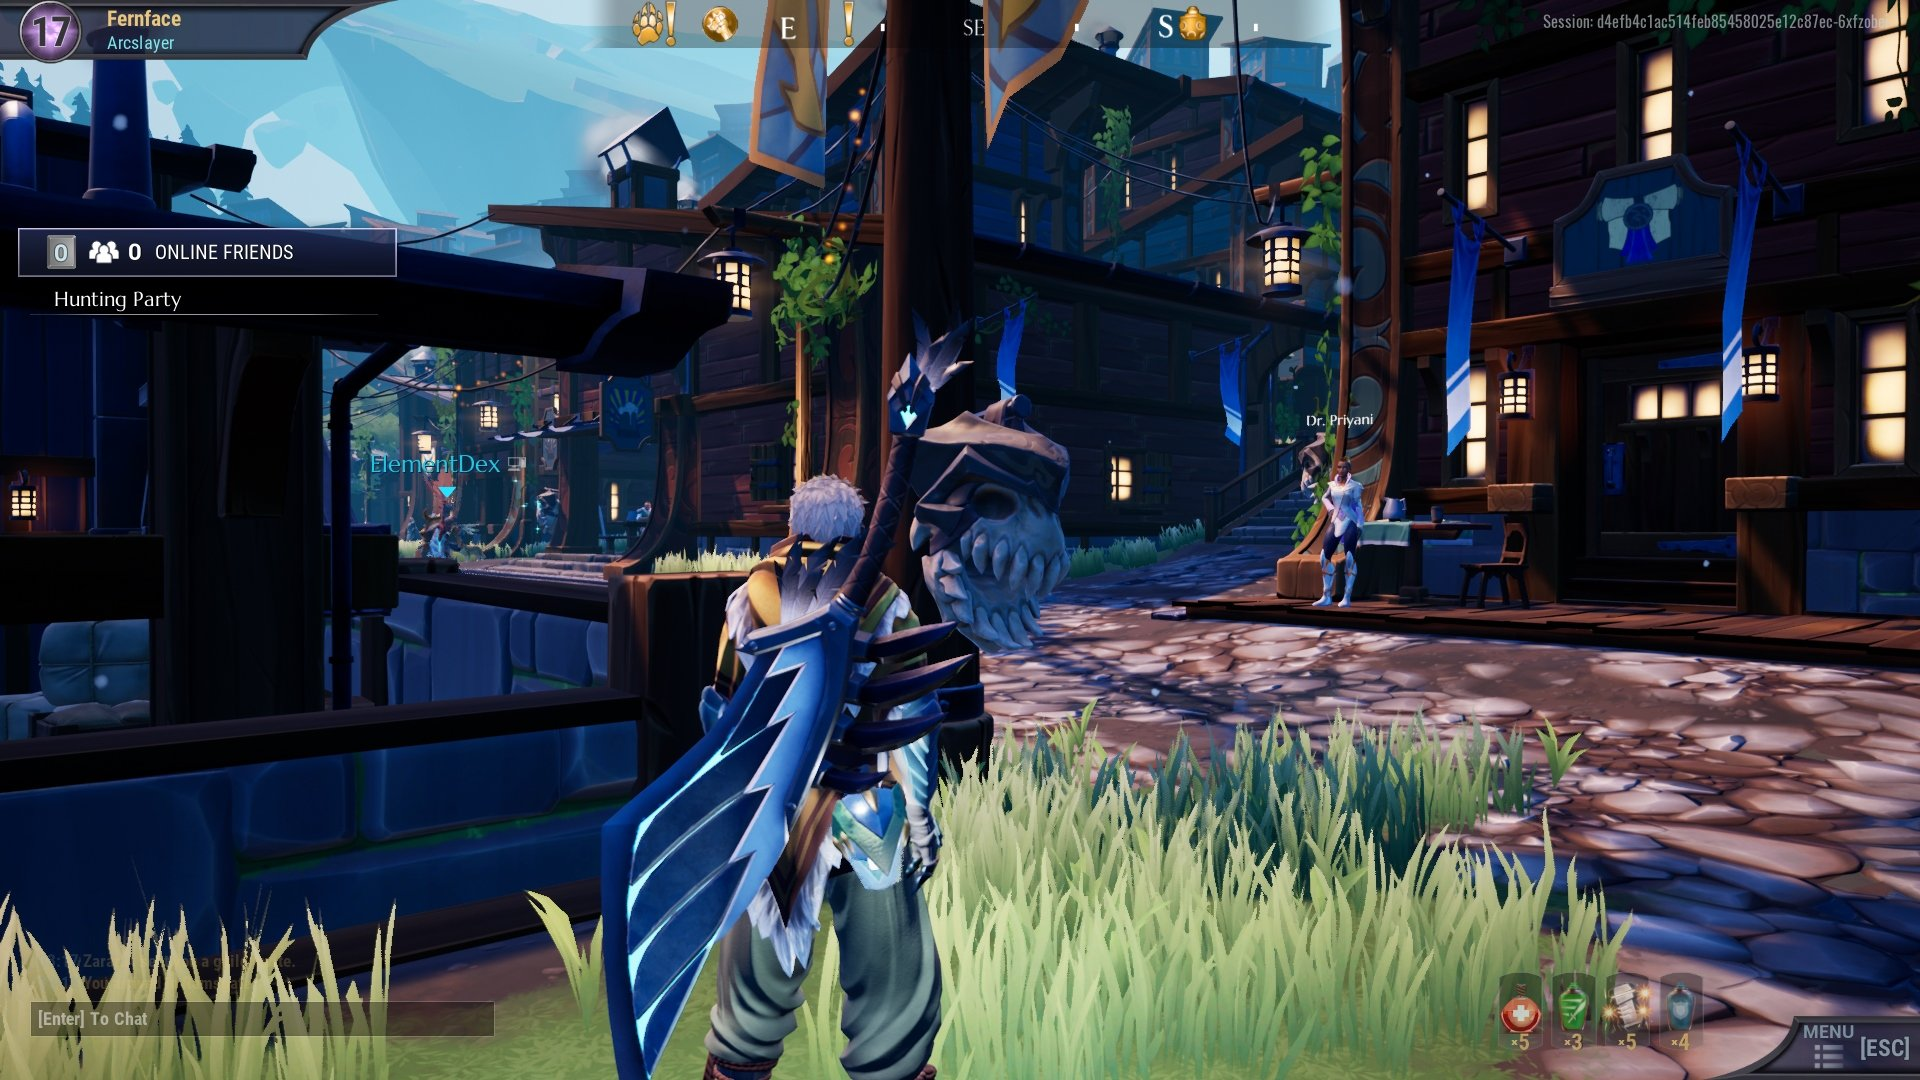 Dread Skull 3 - All daily dread skull locations in Dauntless